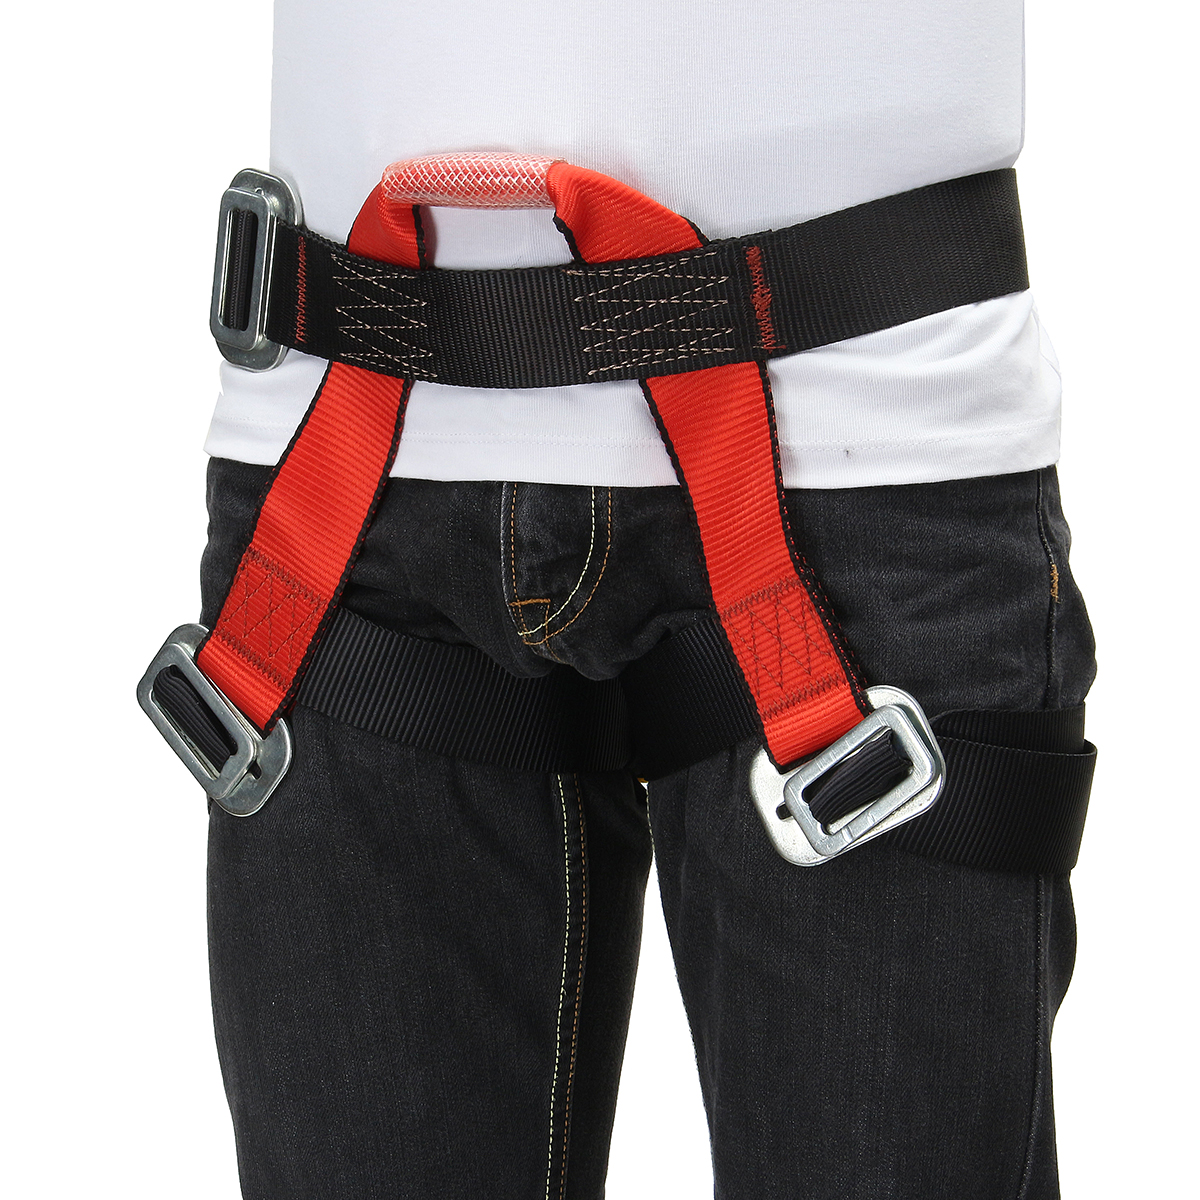 Outdoor Mountain Rock Climbing Rappelling Harness Bust